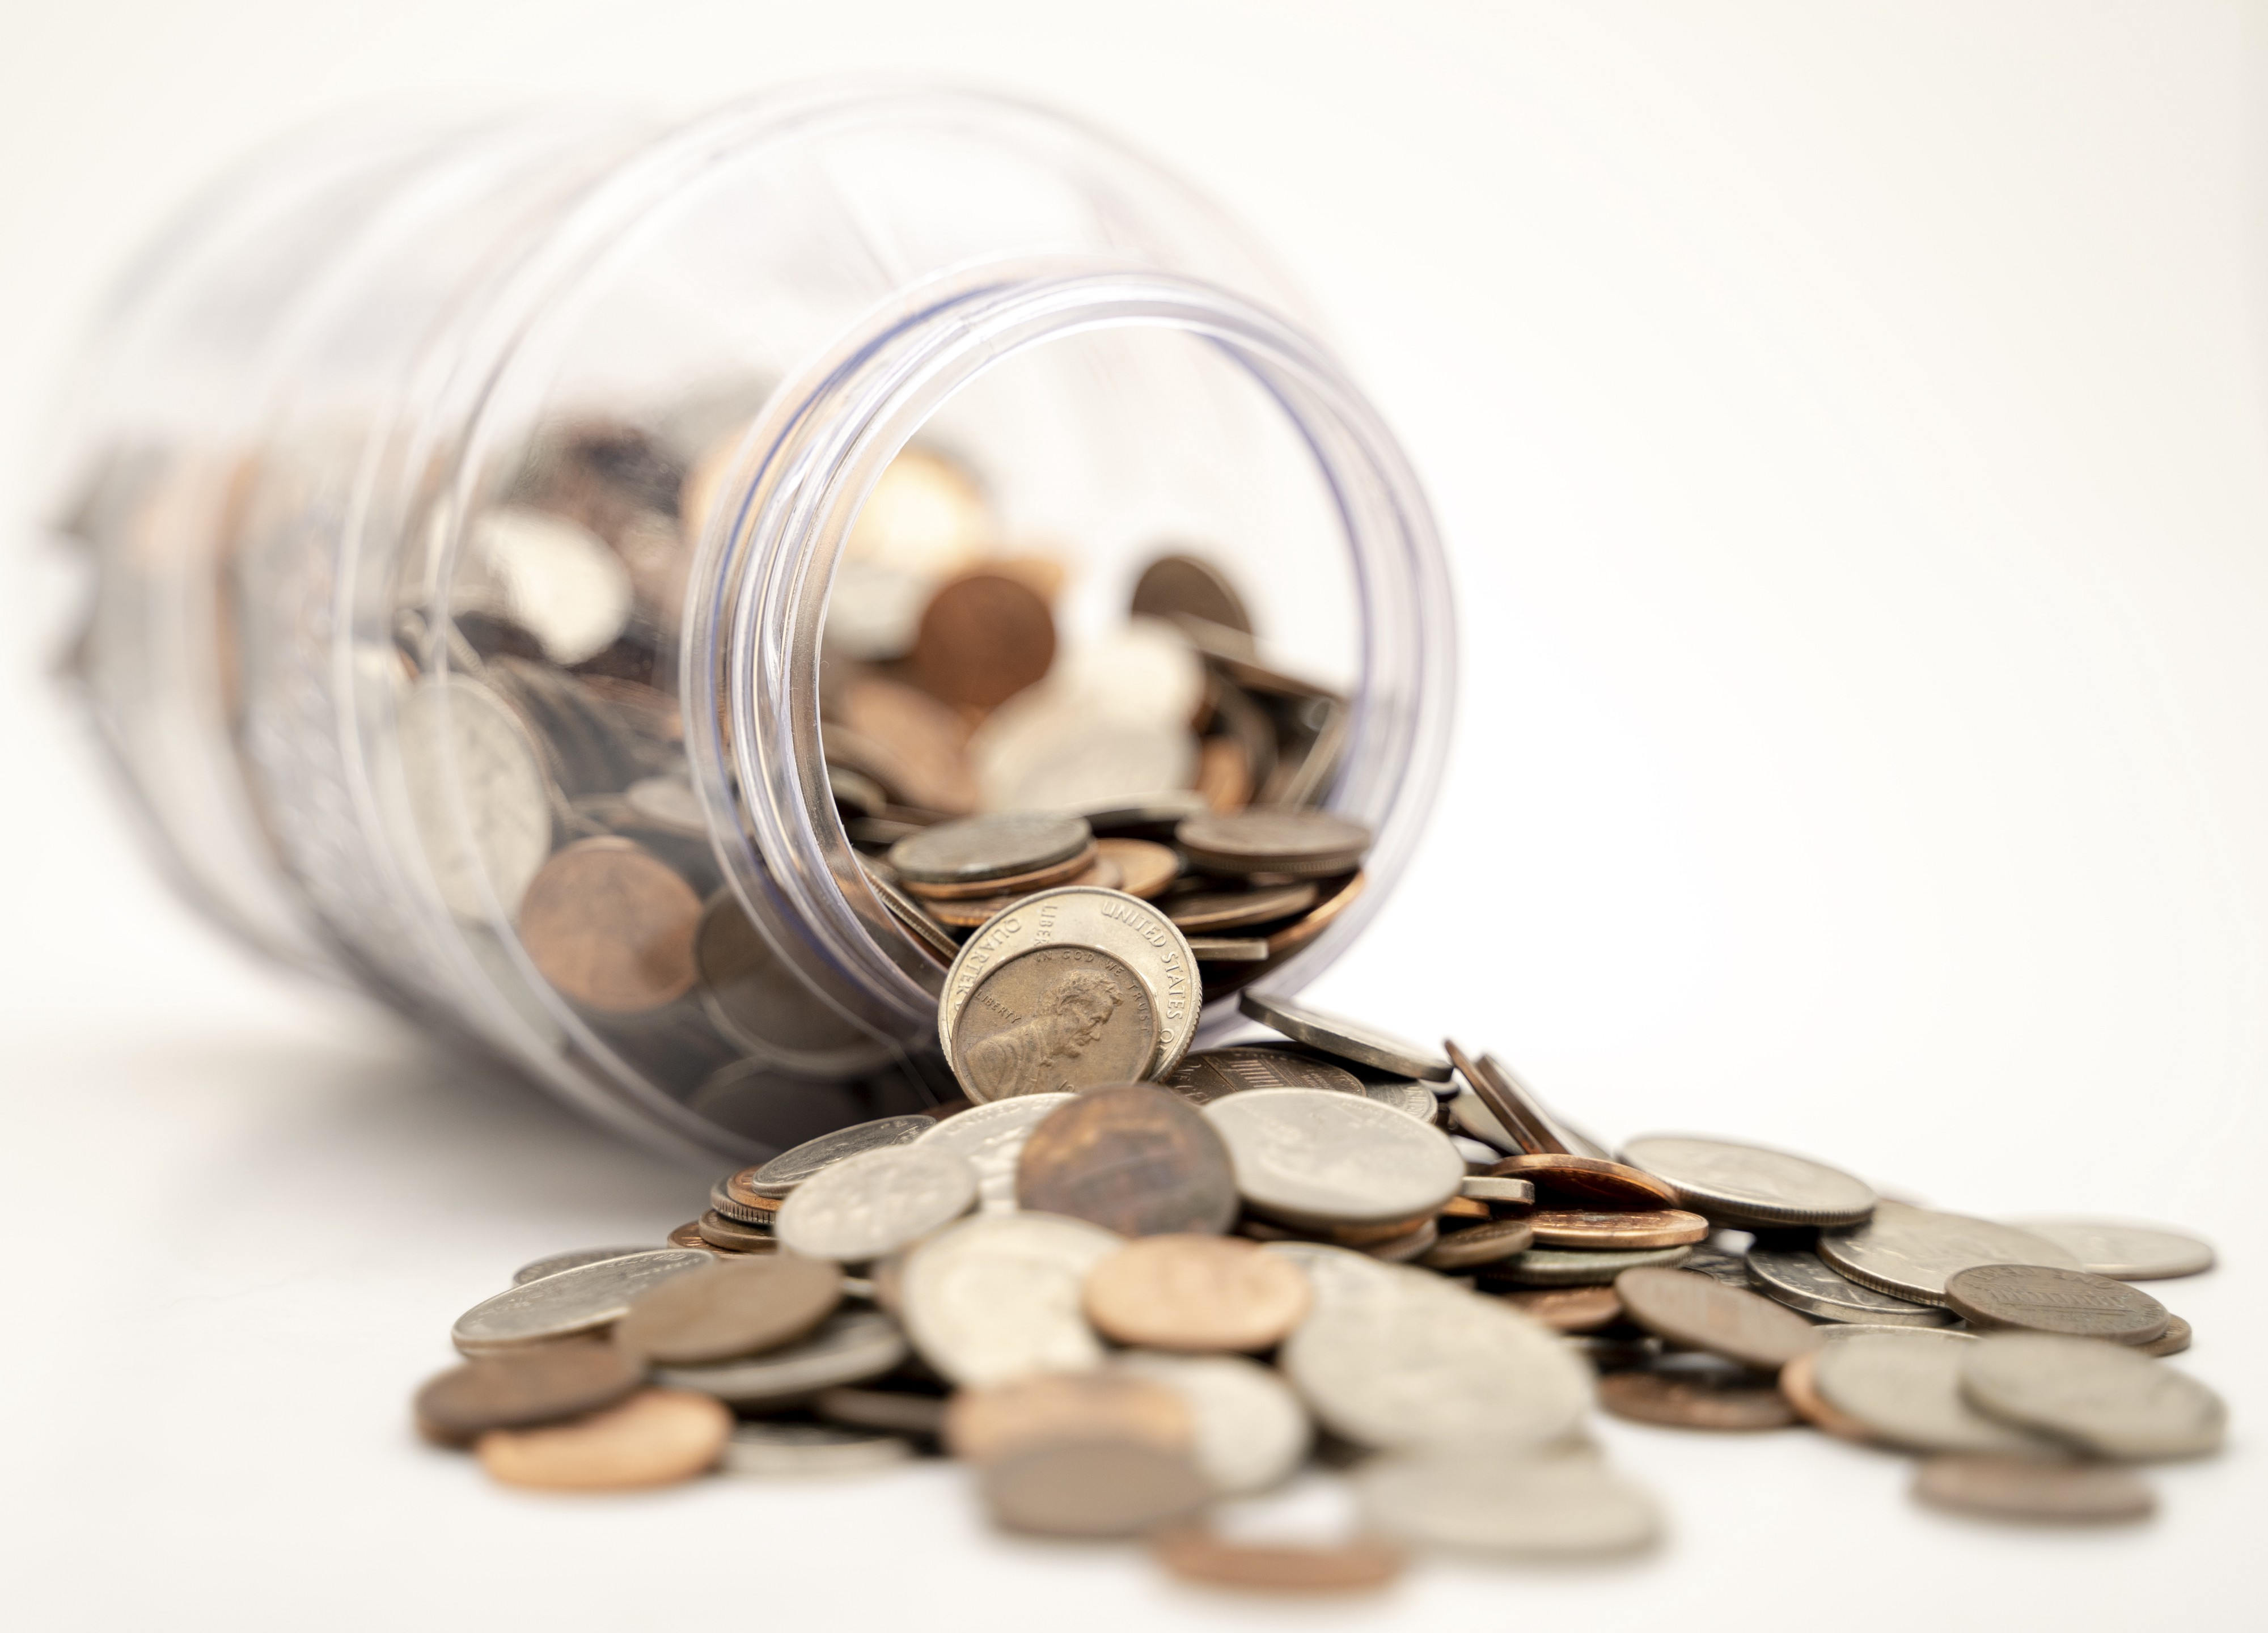 Money Spilled From Can